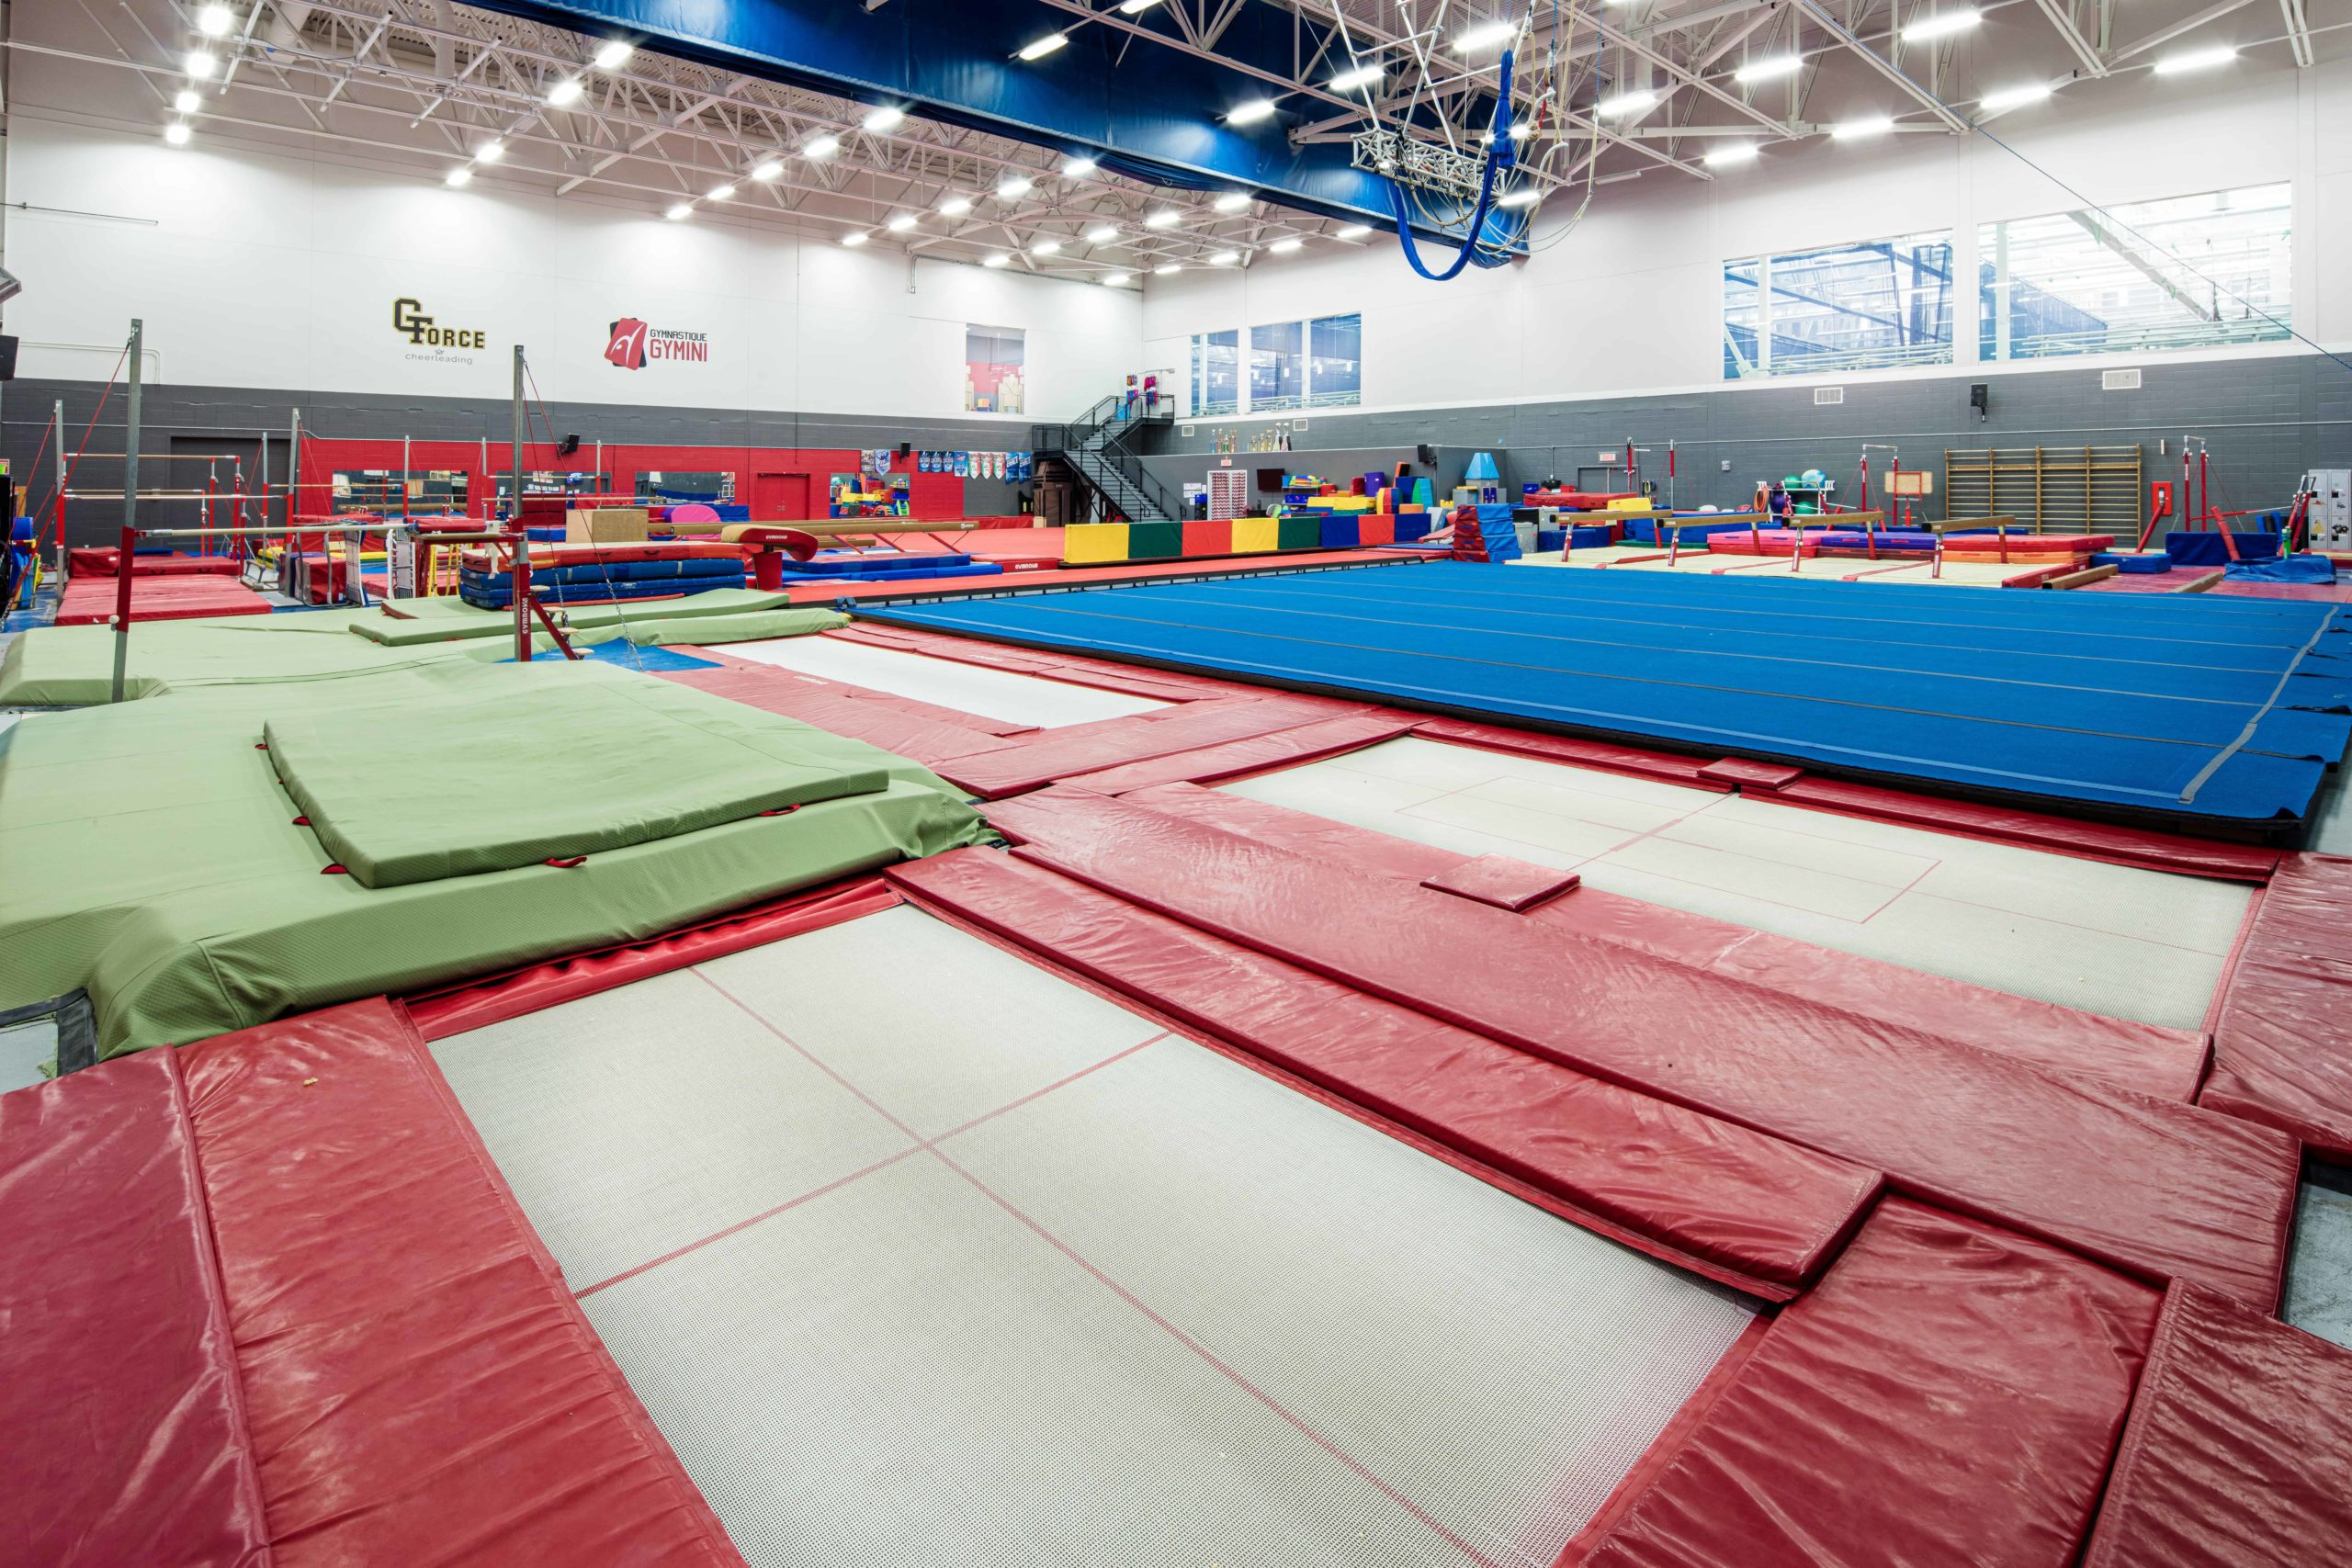 Ambiance Gymnase - Trampolines